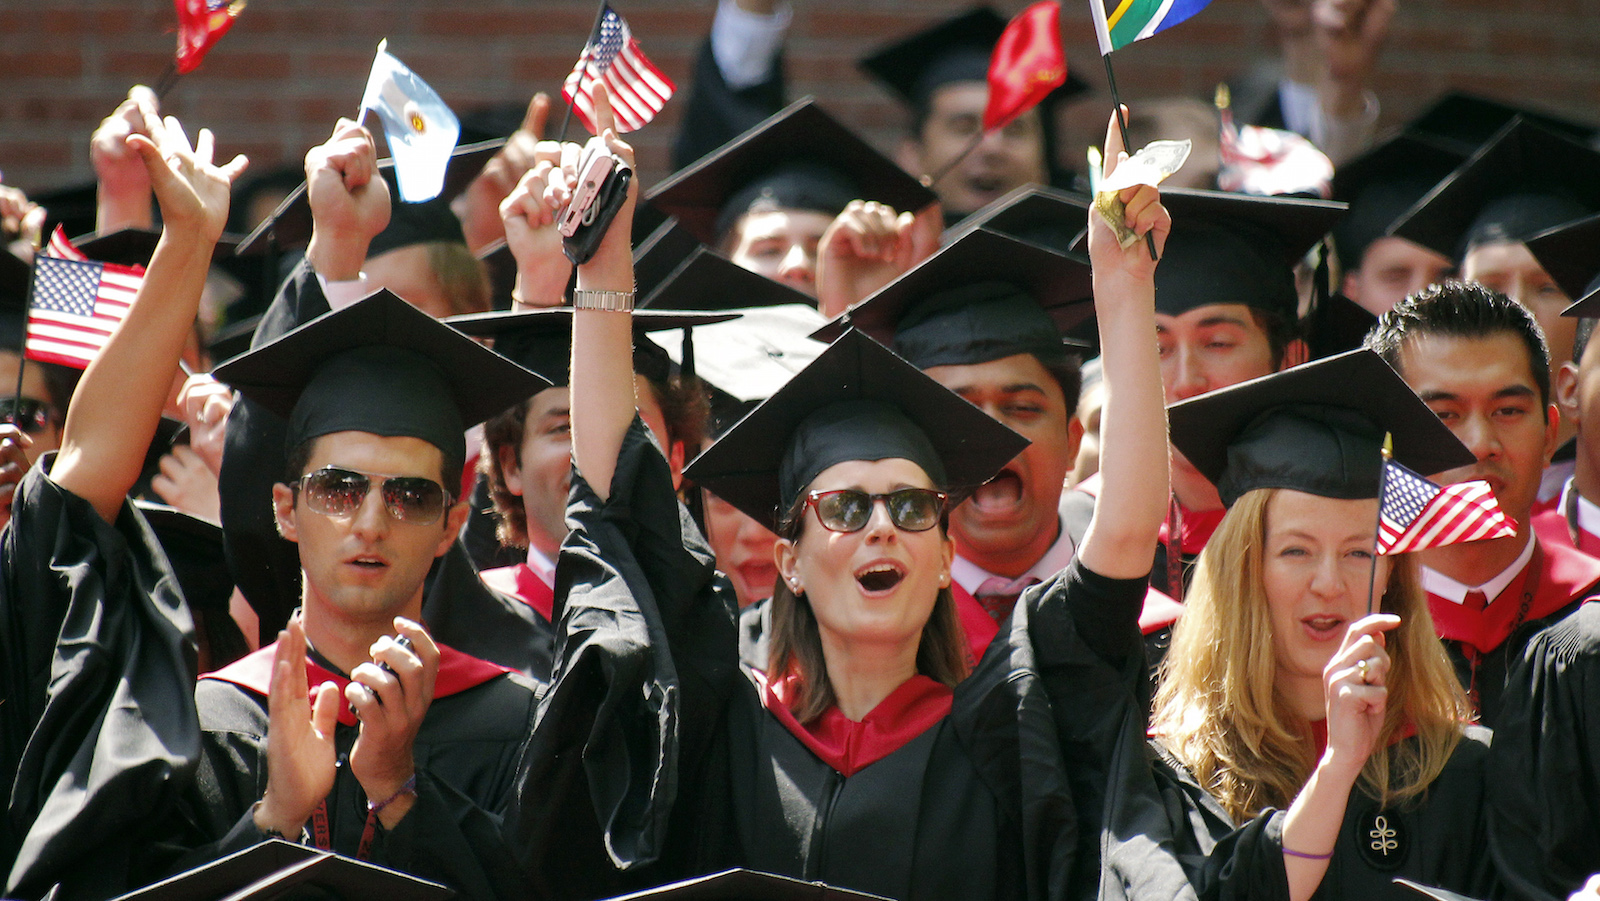 Graduates from the business school celebrate during Harvard University's 359th Commencement Exercises Harvard University in Cambridge, Massachusetts May 27, 2010.     REUTERS/Adam Hunger (UNITED STATES - Tags: EDUCATION SOCIETY) - RTR2EFYR